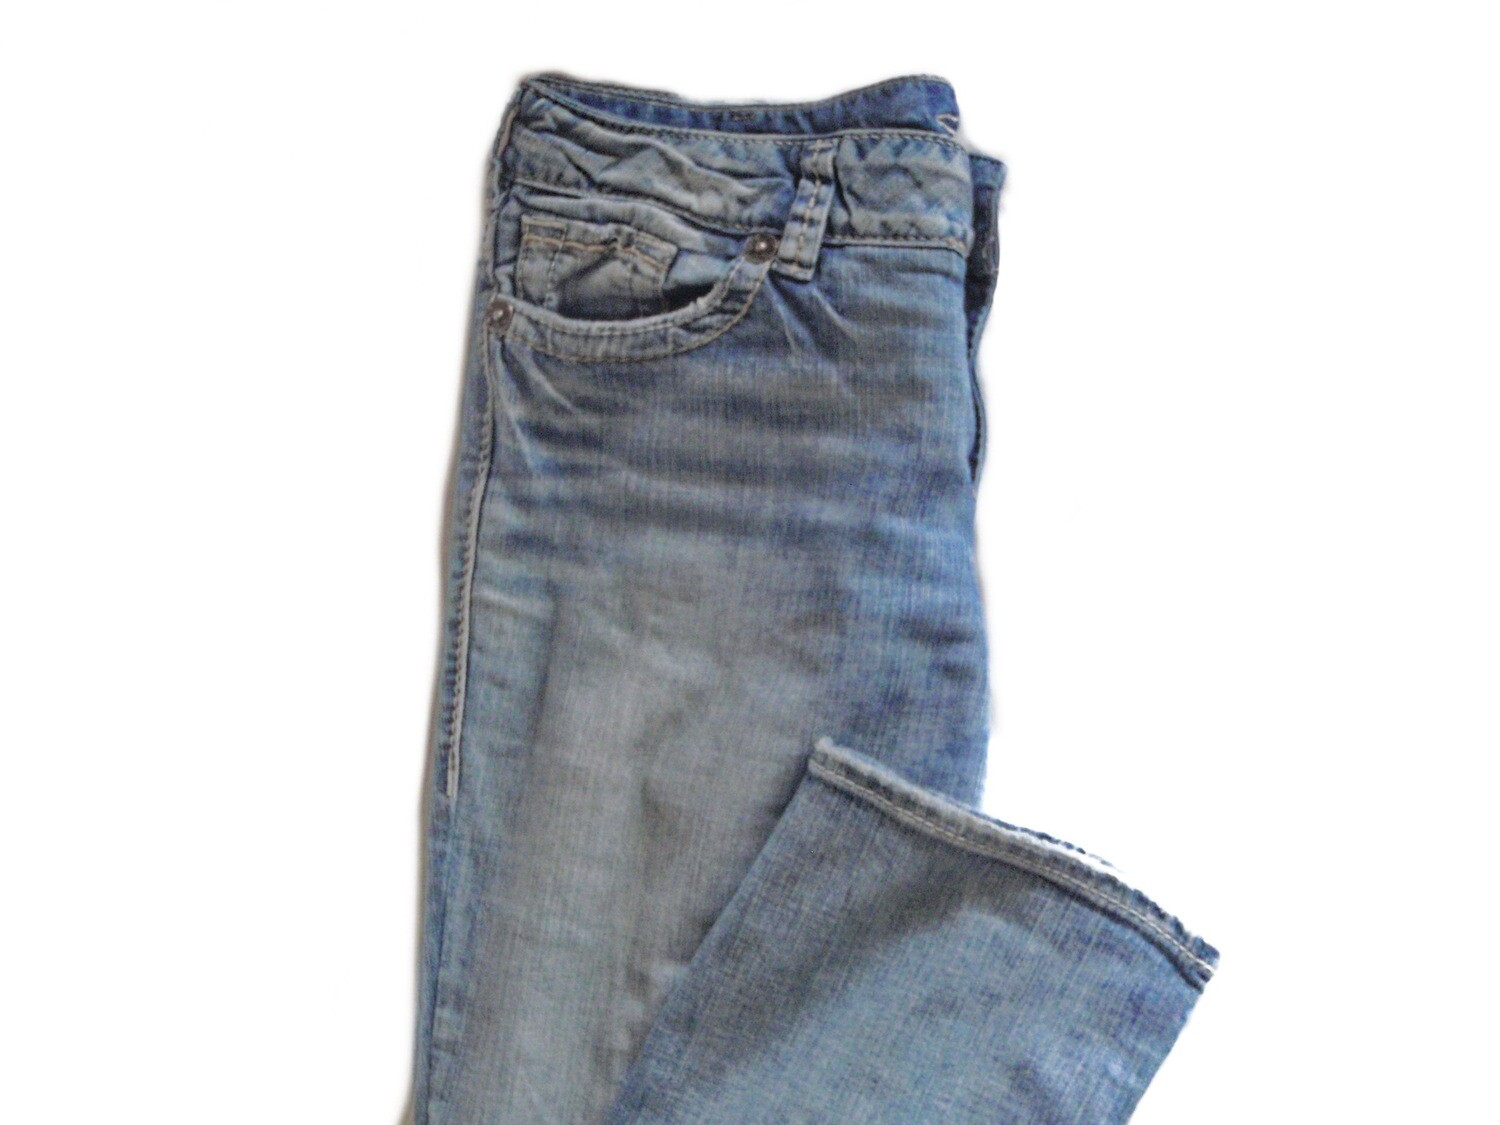 90s Silver Suki Mid Rise Lades Blue Jeans 33/32